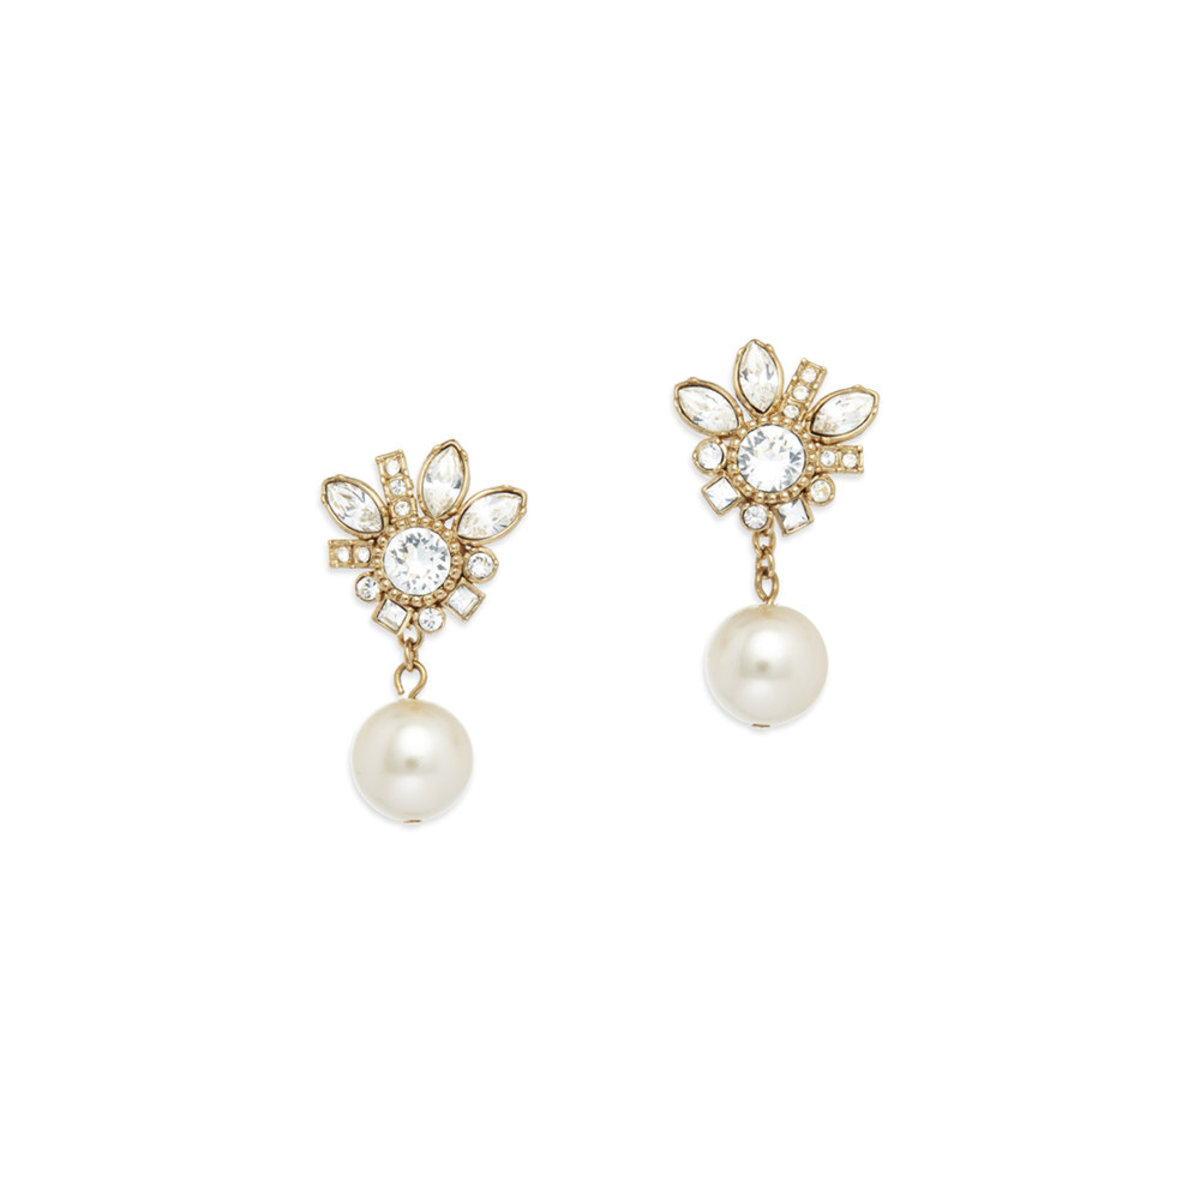 Versatile Pearl: gold plating, Swarovski crystal, Czech crystal pearl 2-way pierced earrings